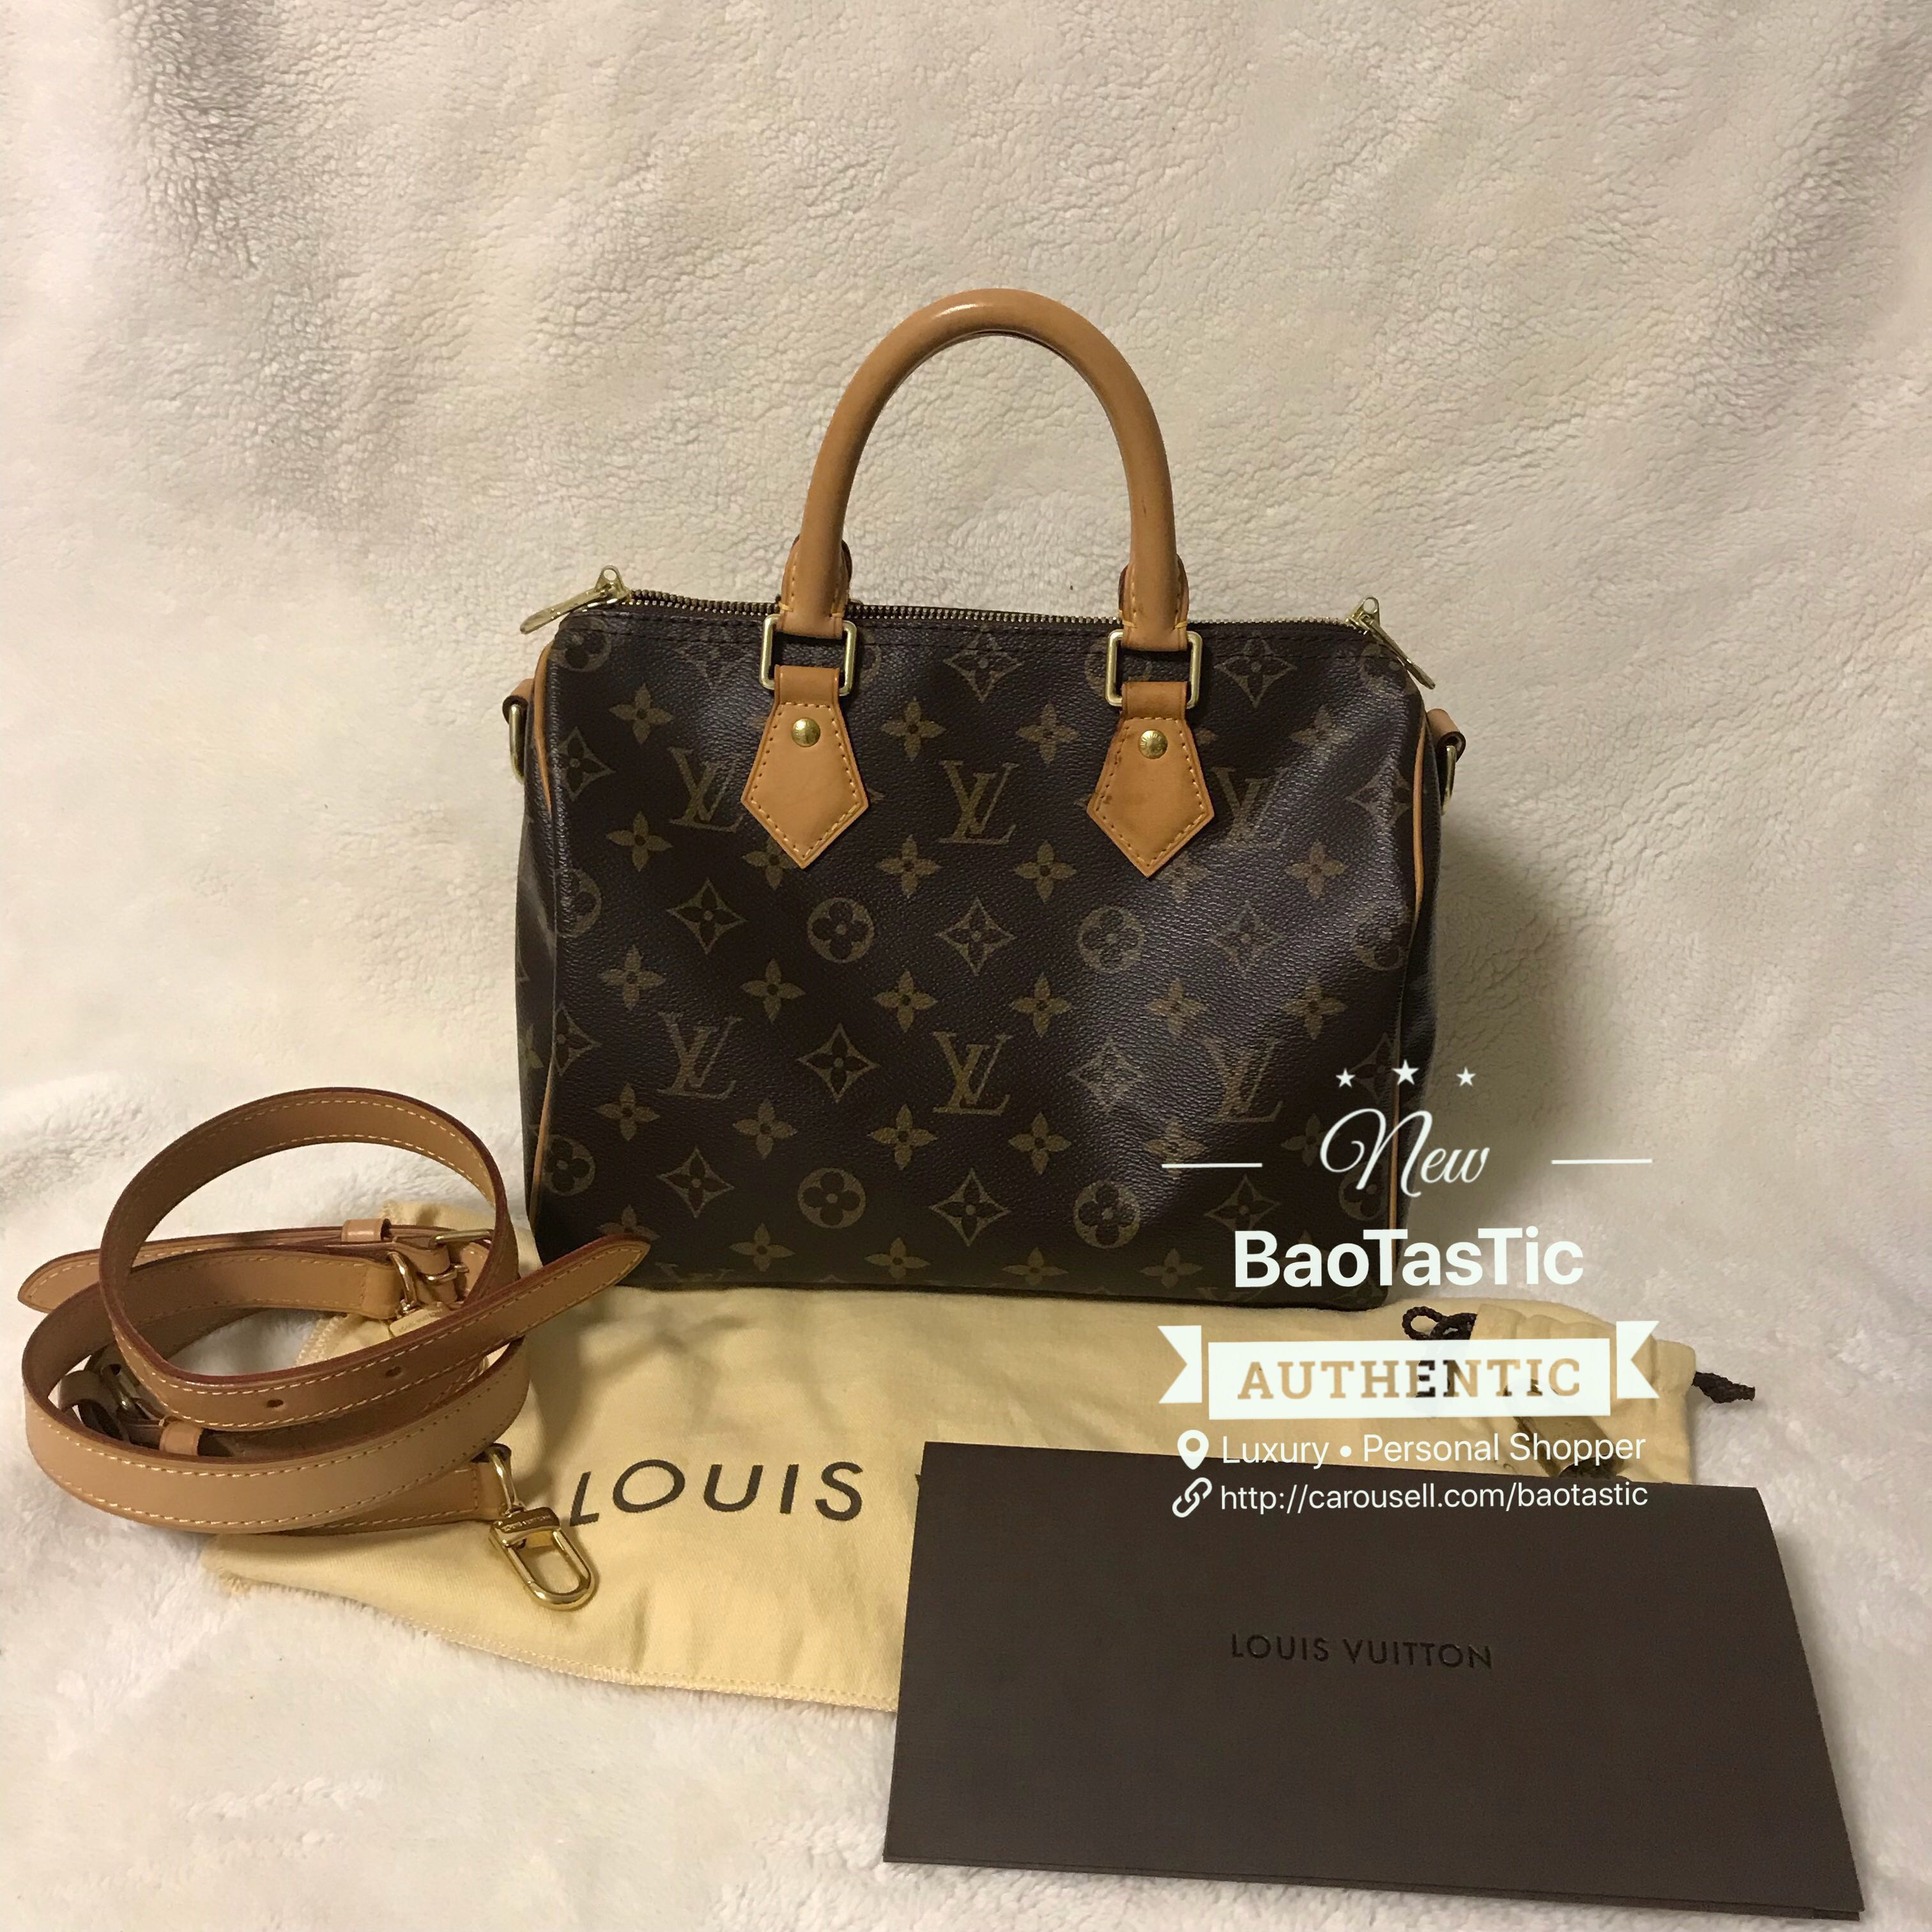 5f153569b1 GOOD PRICE💲 Louis Vuitton Speedy Bandouliere 25 Monogram, Luxury, Bags &  Wallets, Handbags on Carousell